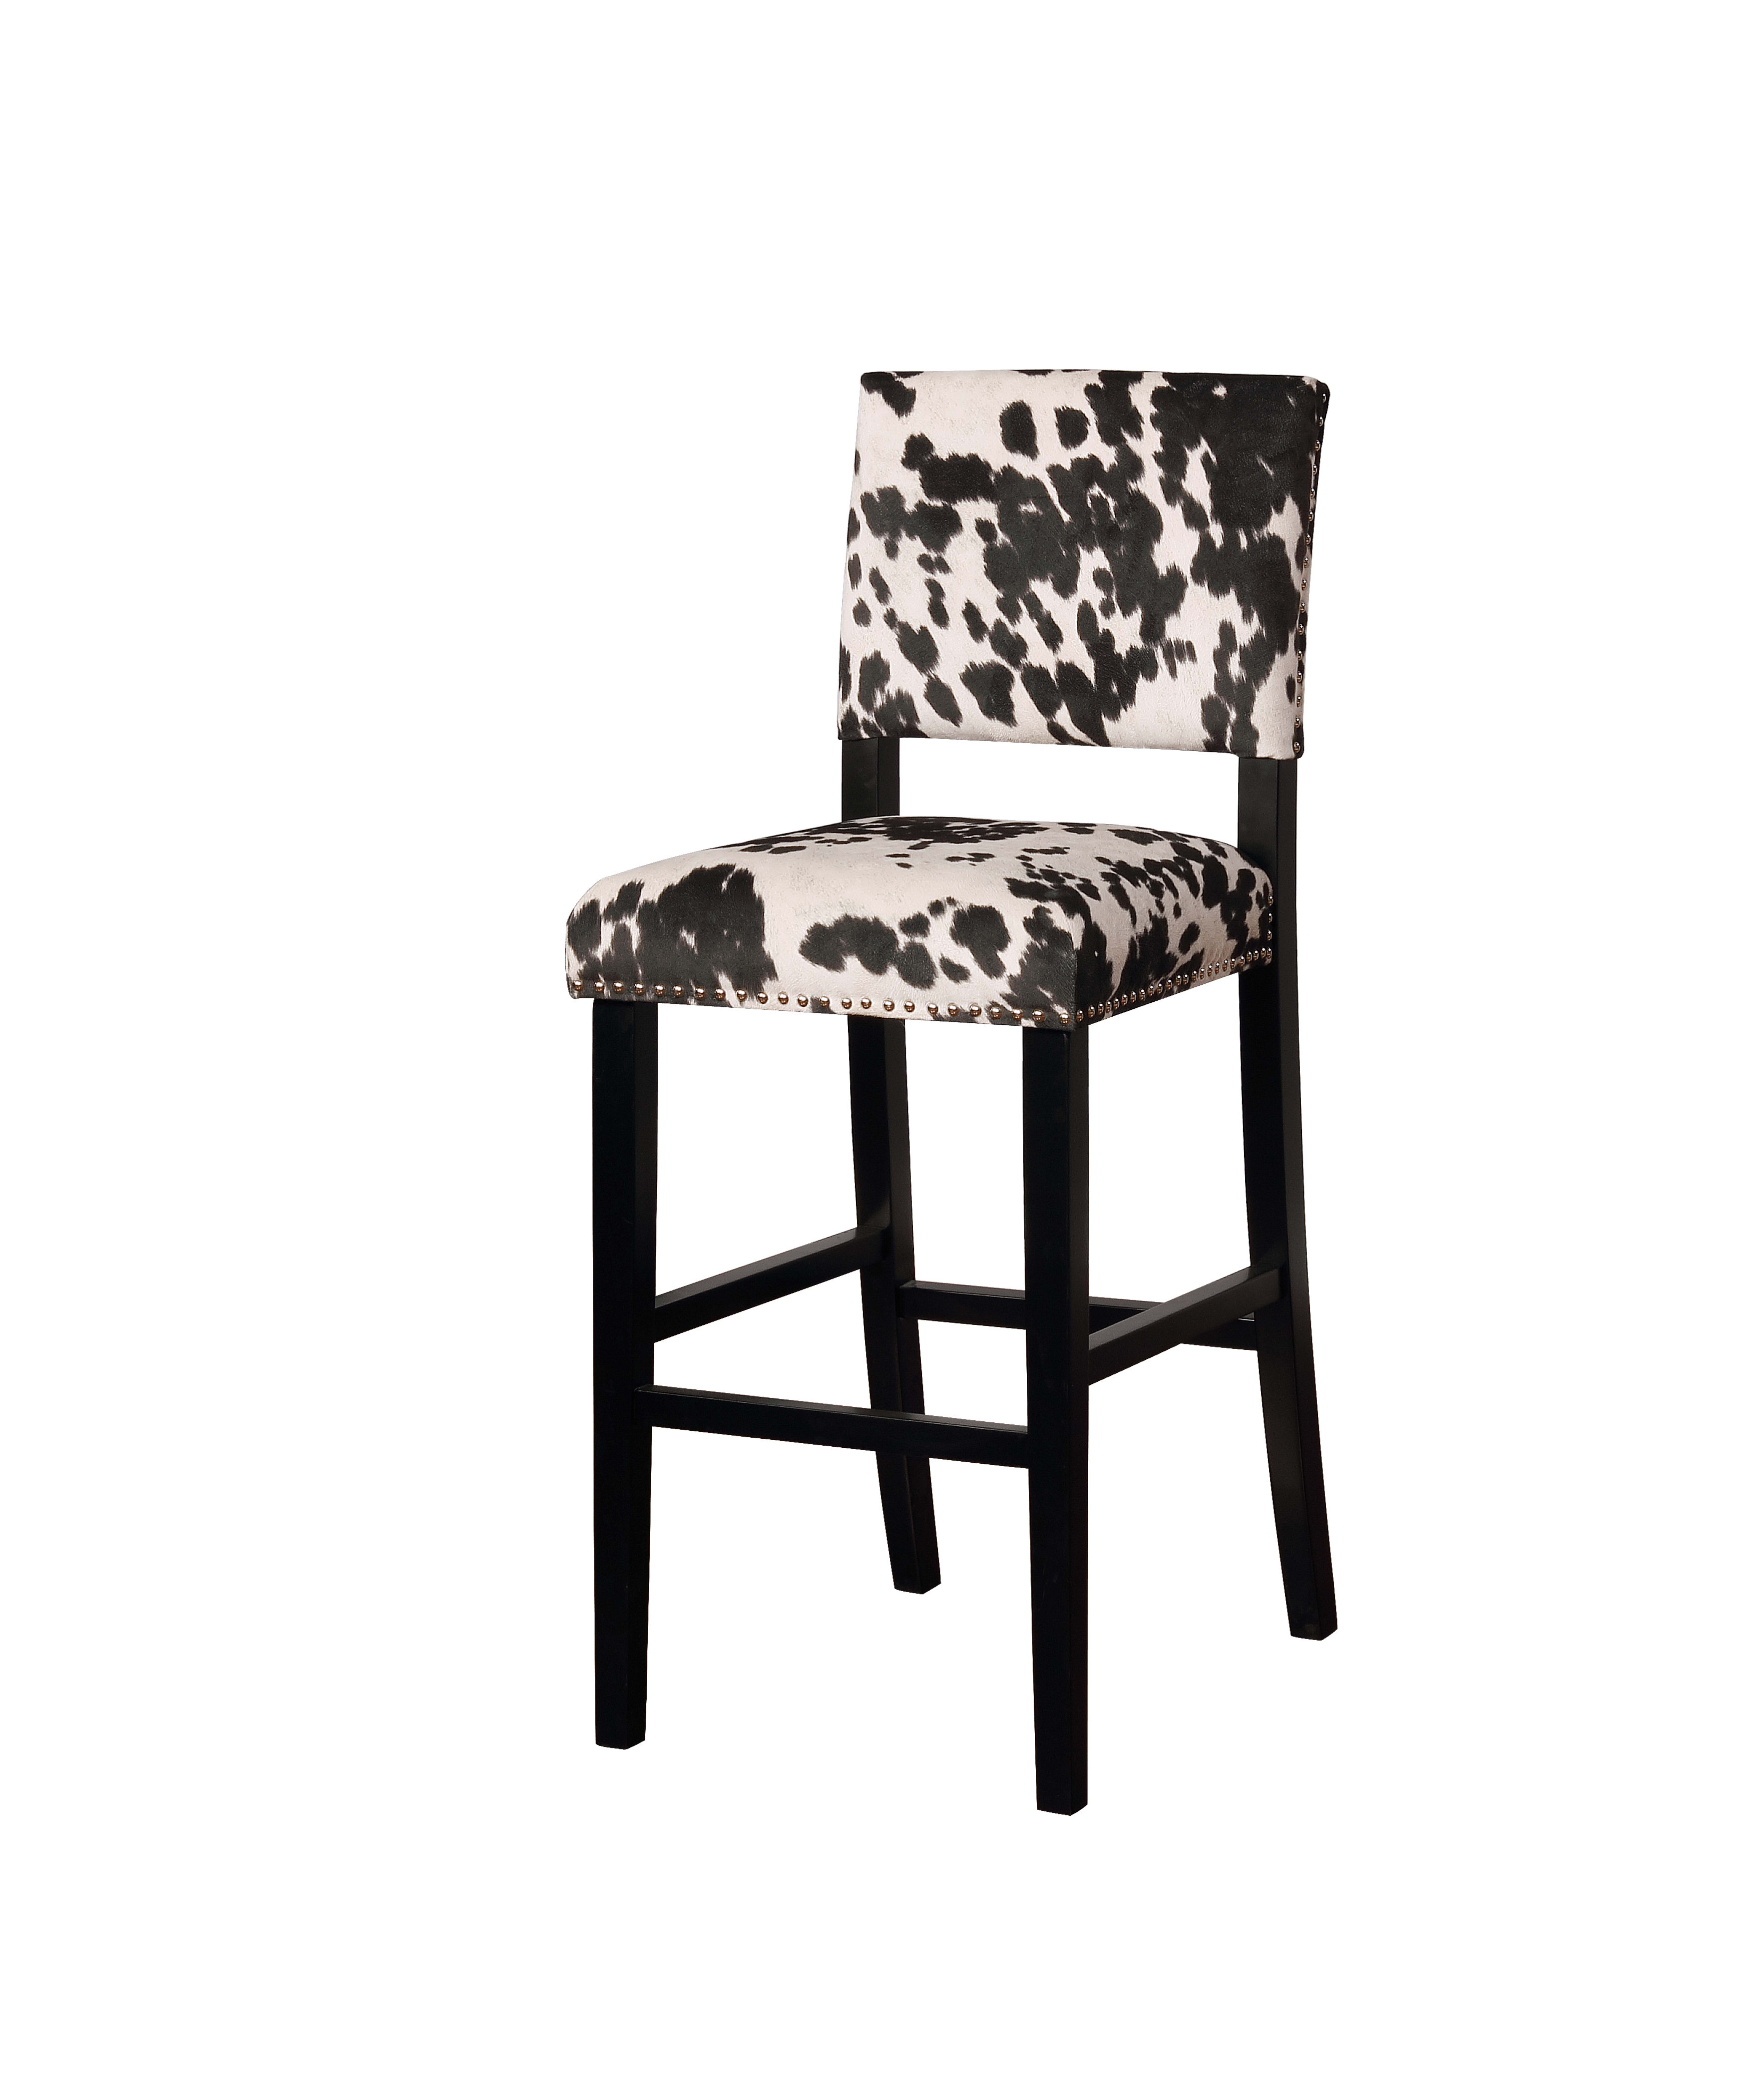 Corey Black Cow Print Bar Stool